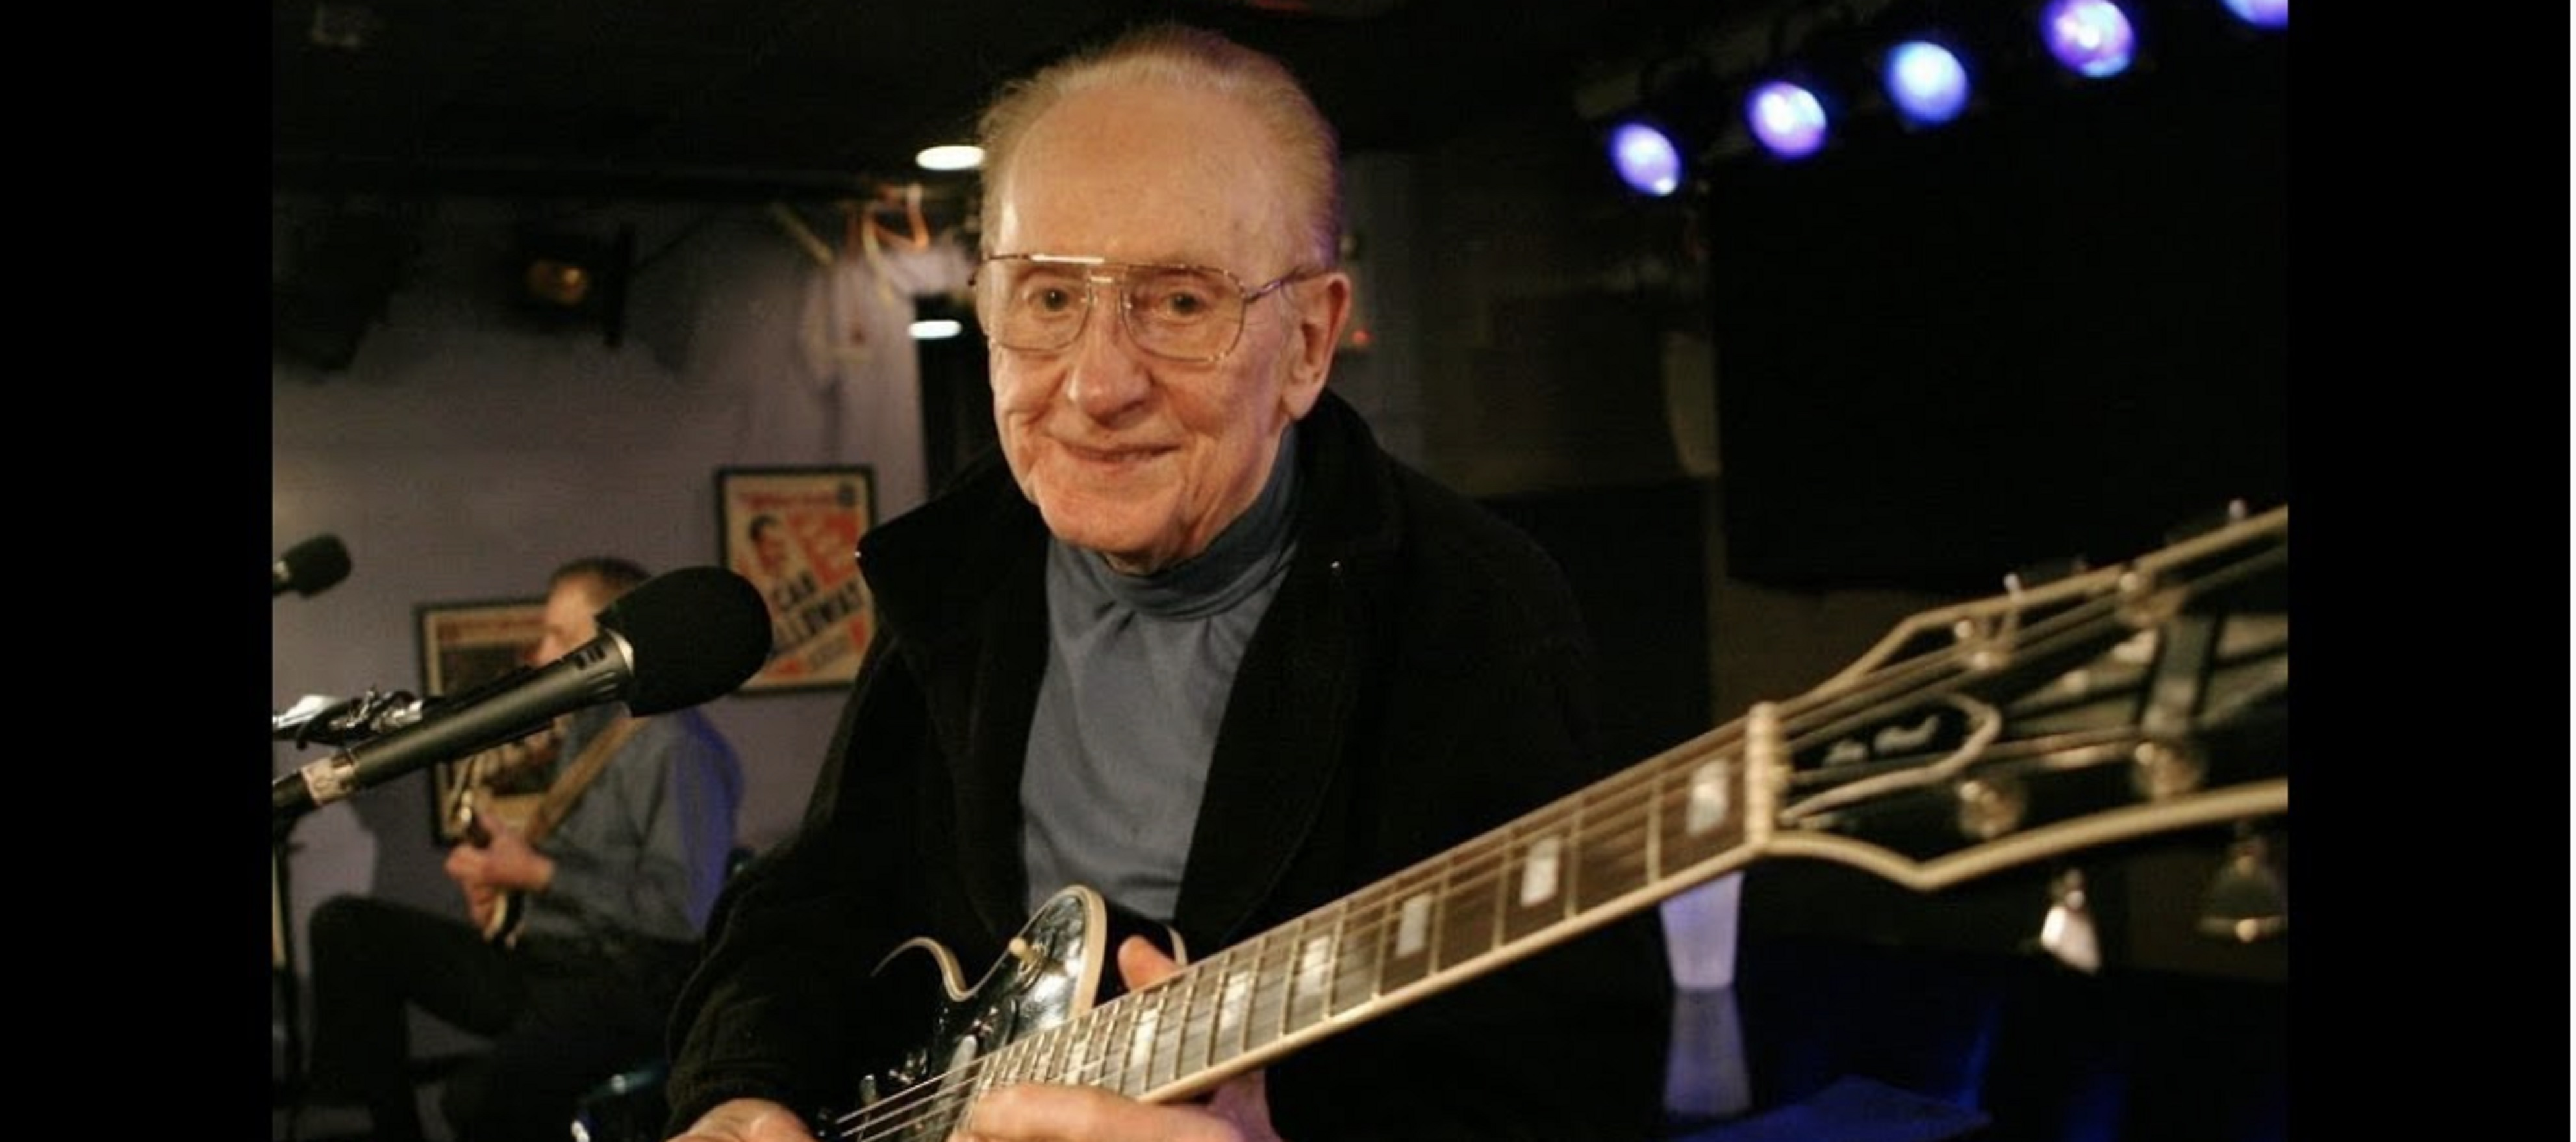 Les Paul at 105: A Virtual Celebration | The Mahwah Museum June 6-9, 2020